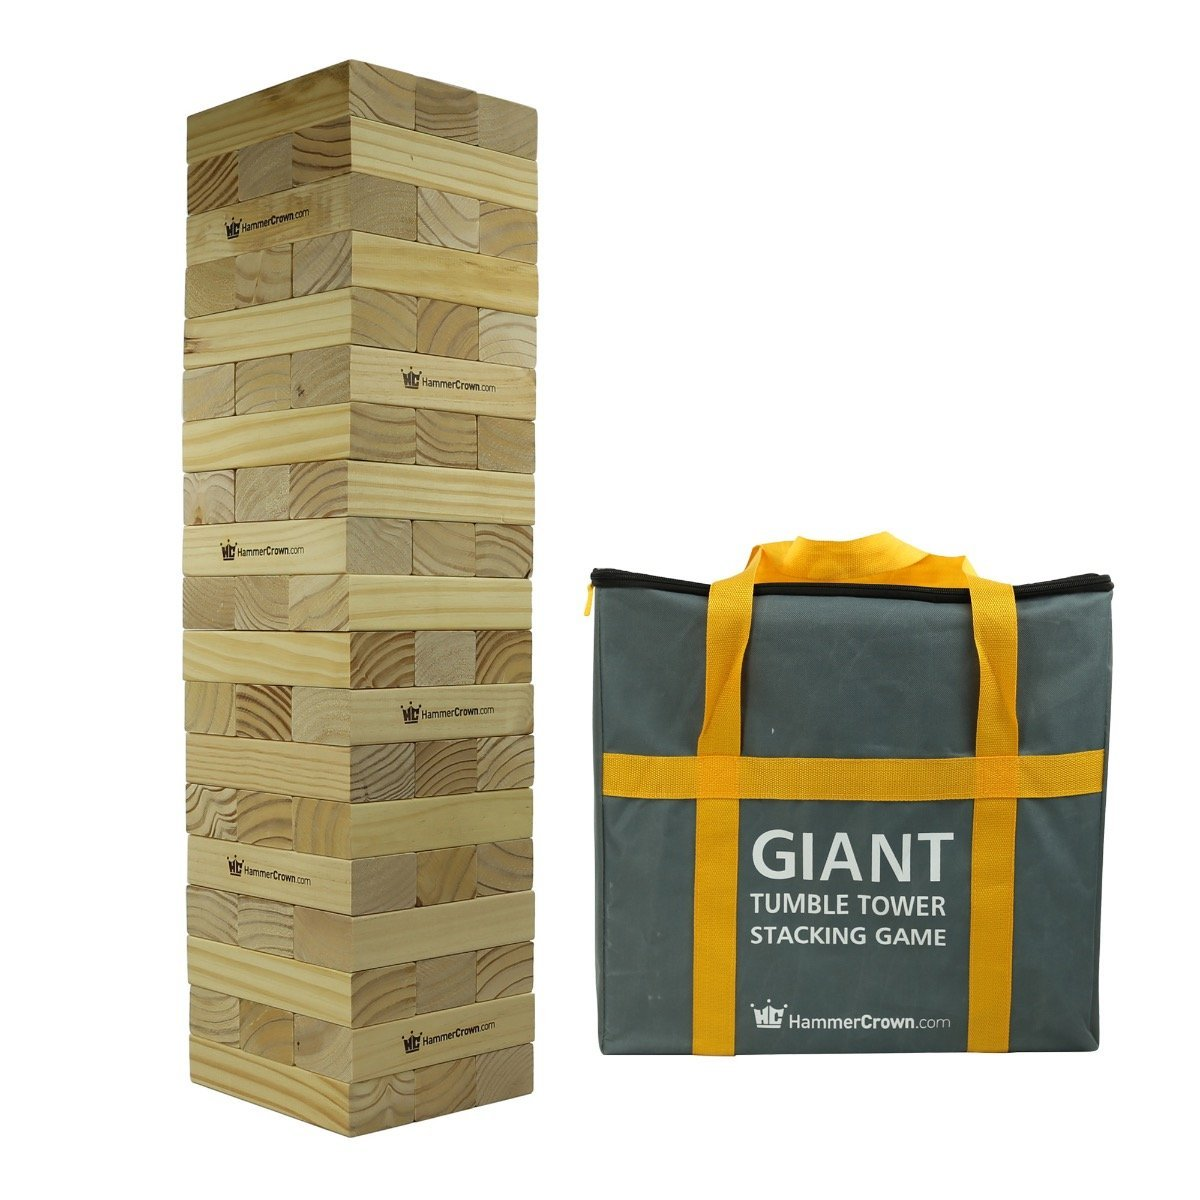 Three words: giant. tumble. tower. Let the games begin! - $$